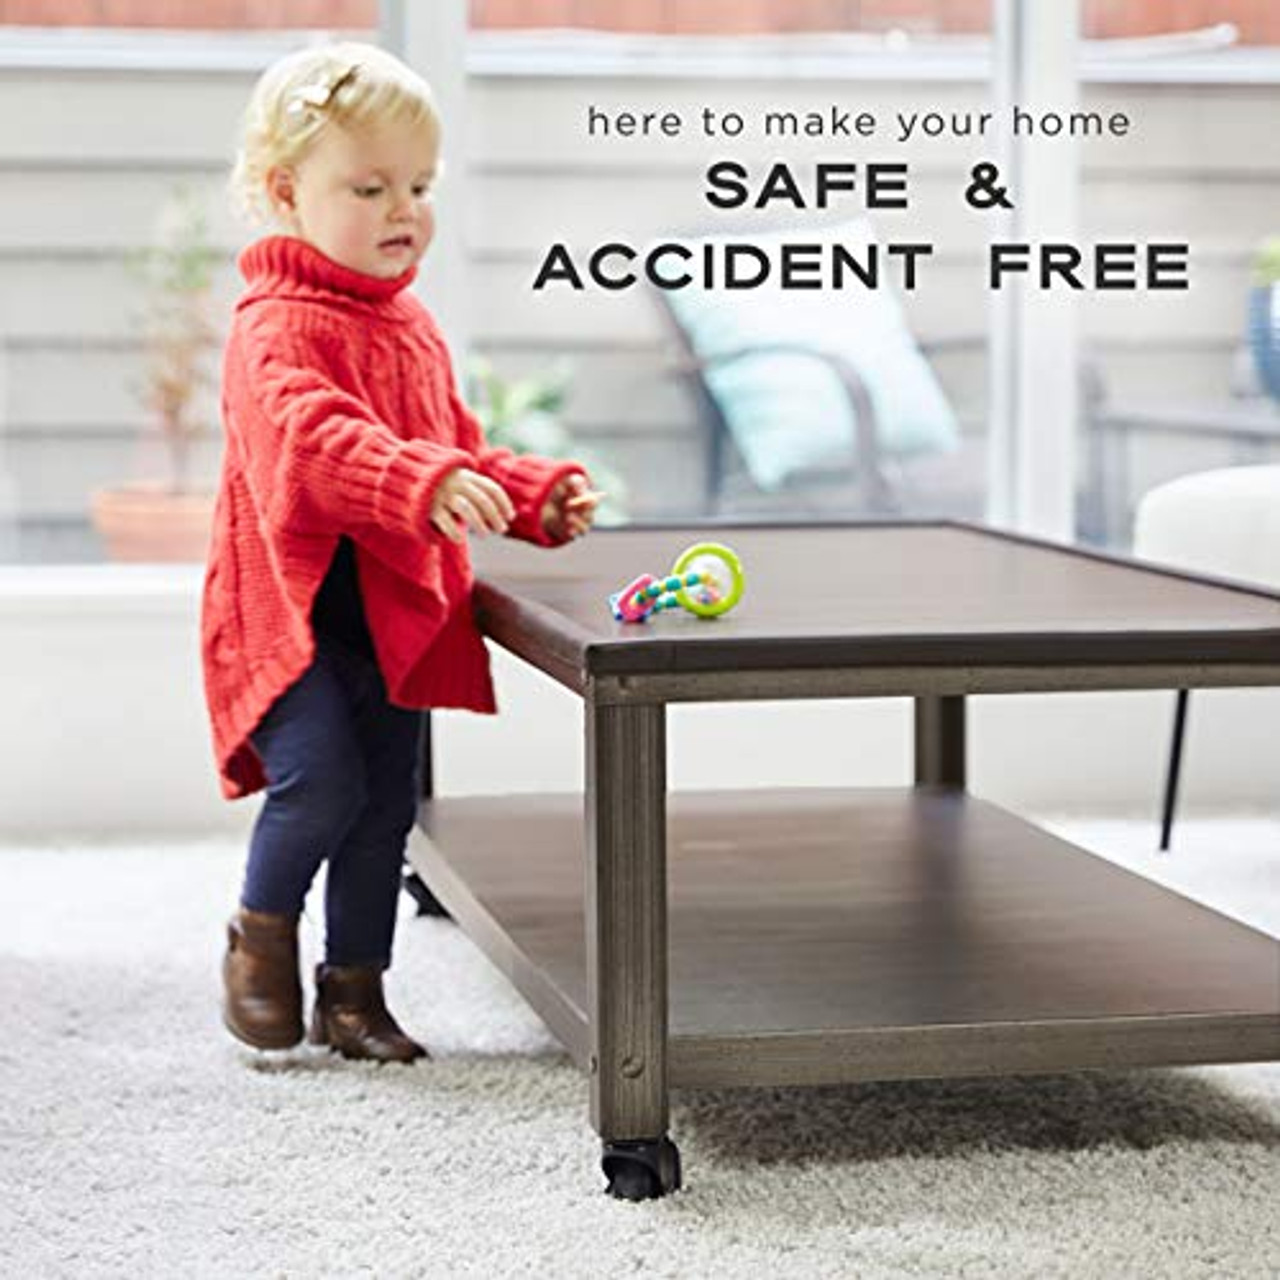 Free Home Baby Proofing Checklist - Ebony Black Moms Besty Extra Dense Child Safety Protectors /& Furniture Bumpers Set Total Coverage 15 Ft. Edge /& 4 Taped Corner Guards 16.2 Ft